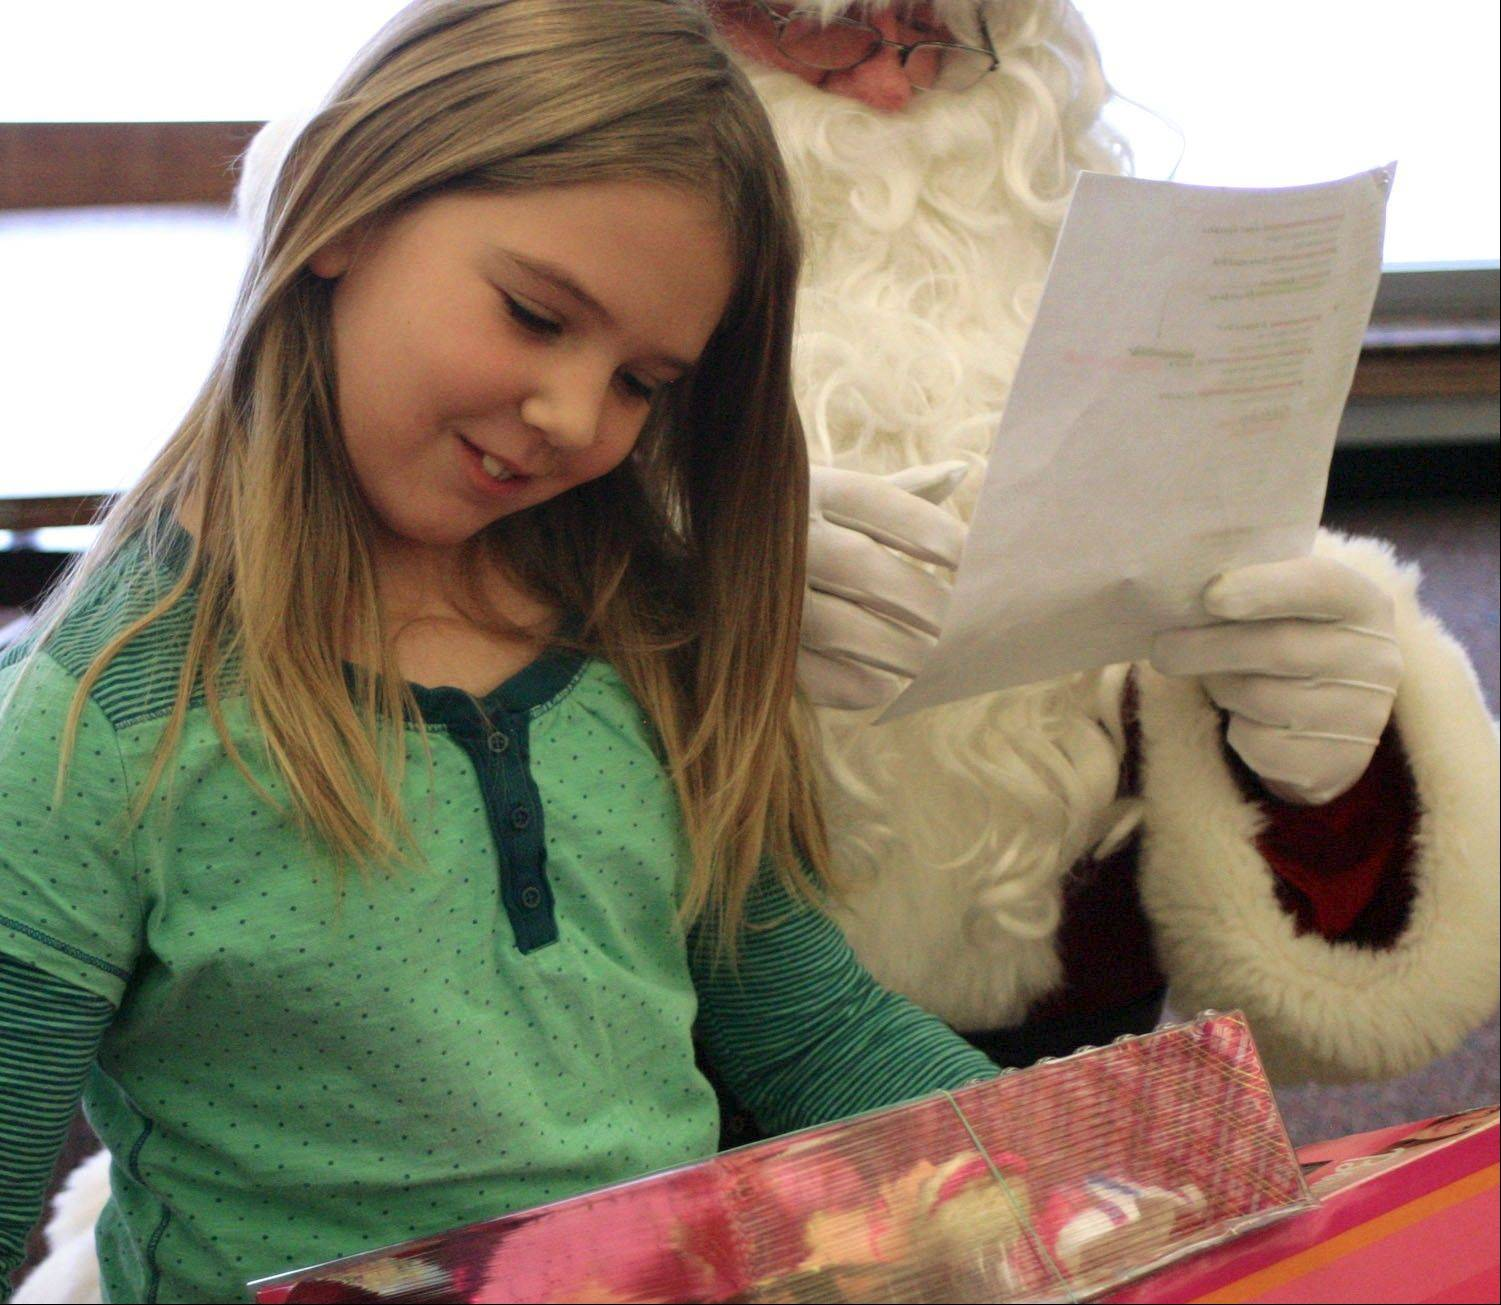 All Mooseheart elementary schoolchildren were on Santa's list for gifts, including second-grader Ashlyn Cranfield, who has been on campus for one month.